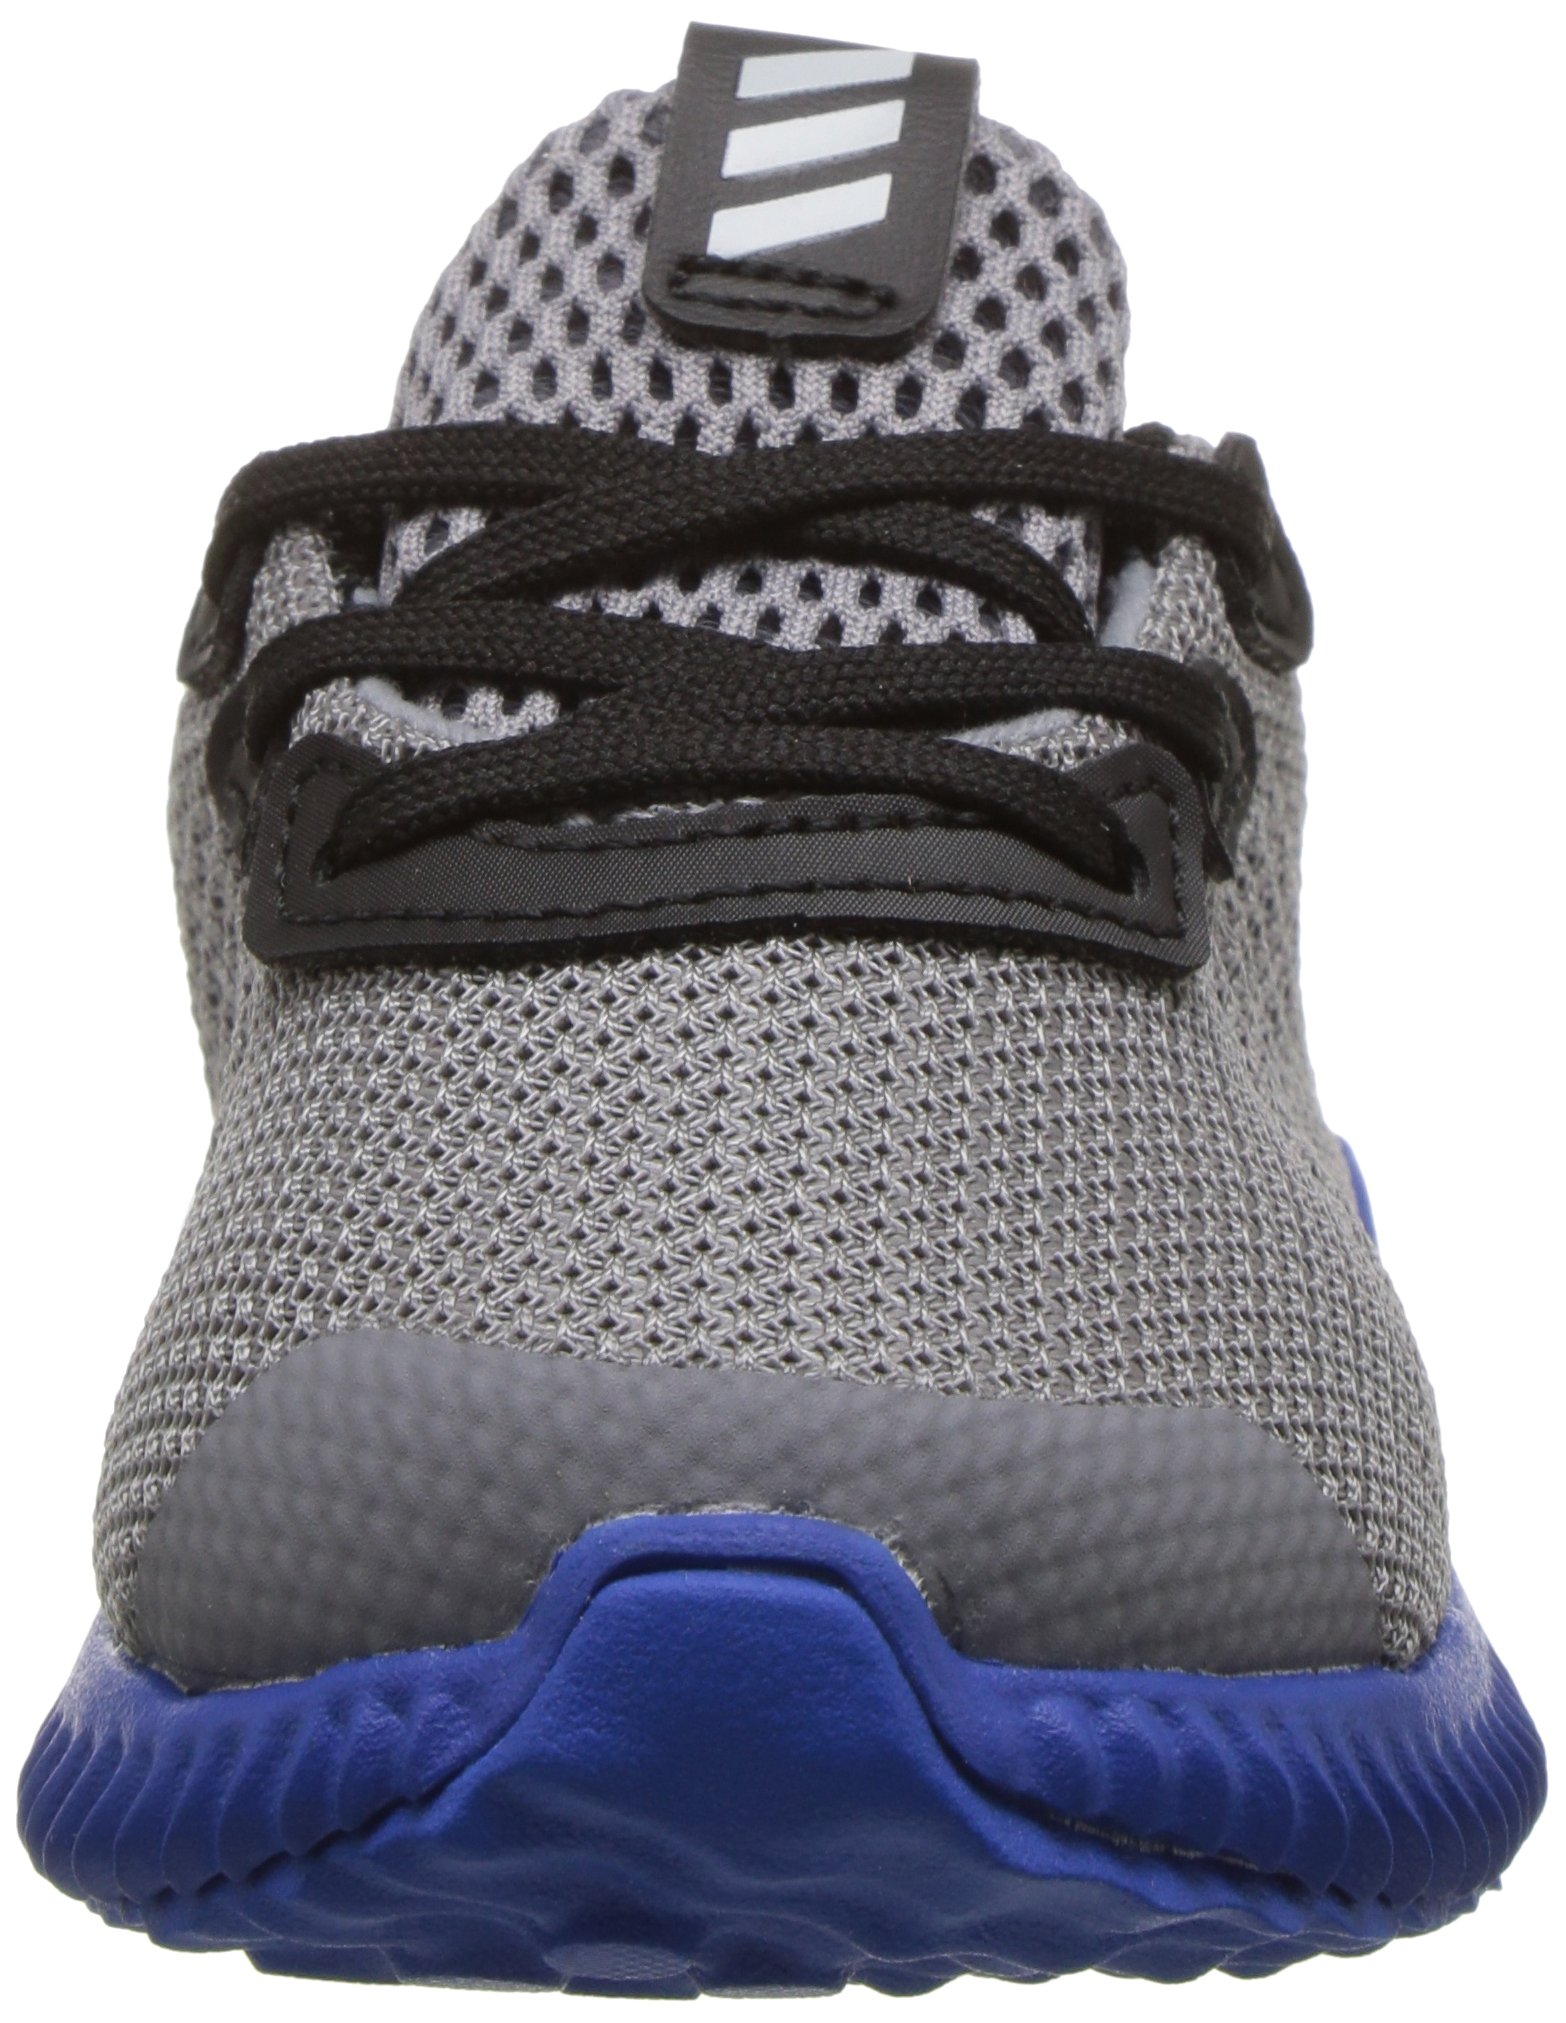 adidas Kids' Alphabounce Sneaker, Grey/Light Onix/Satellite, 7 M US Toddler by adidas (Image #4)